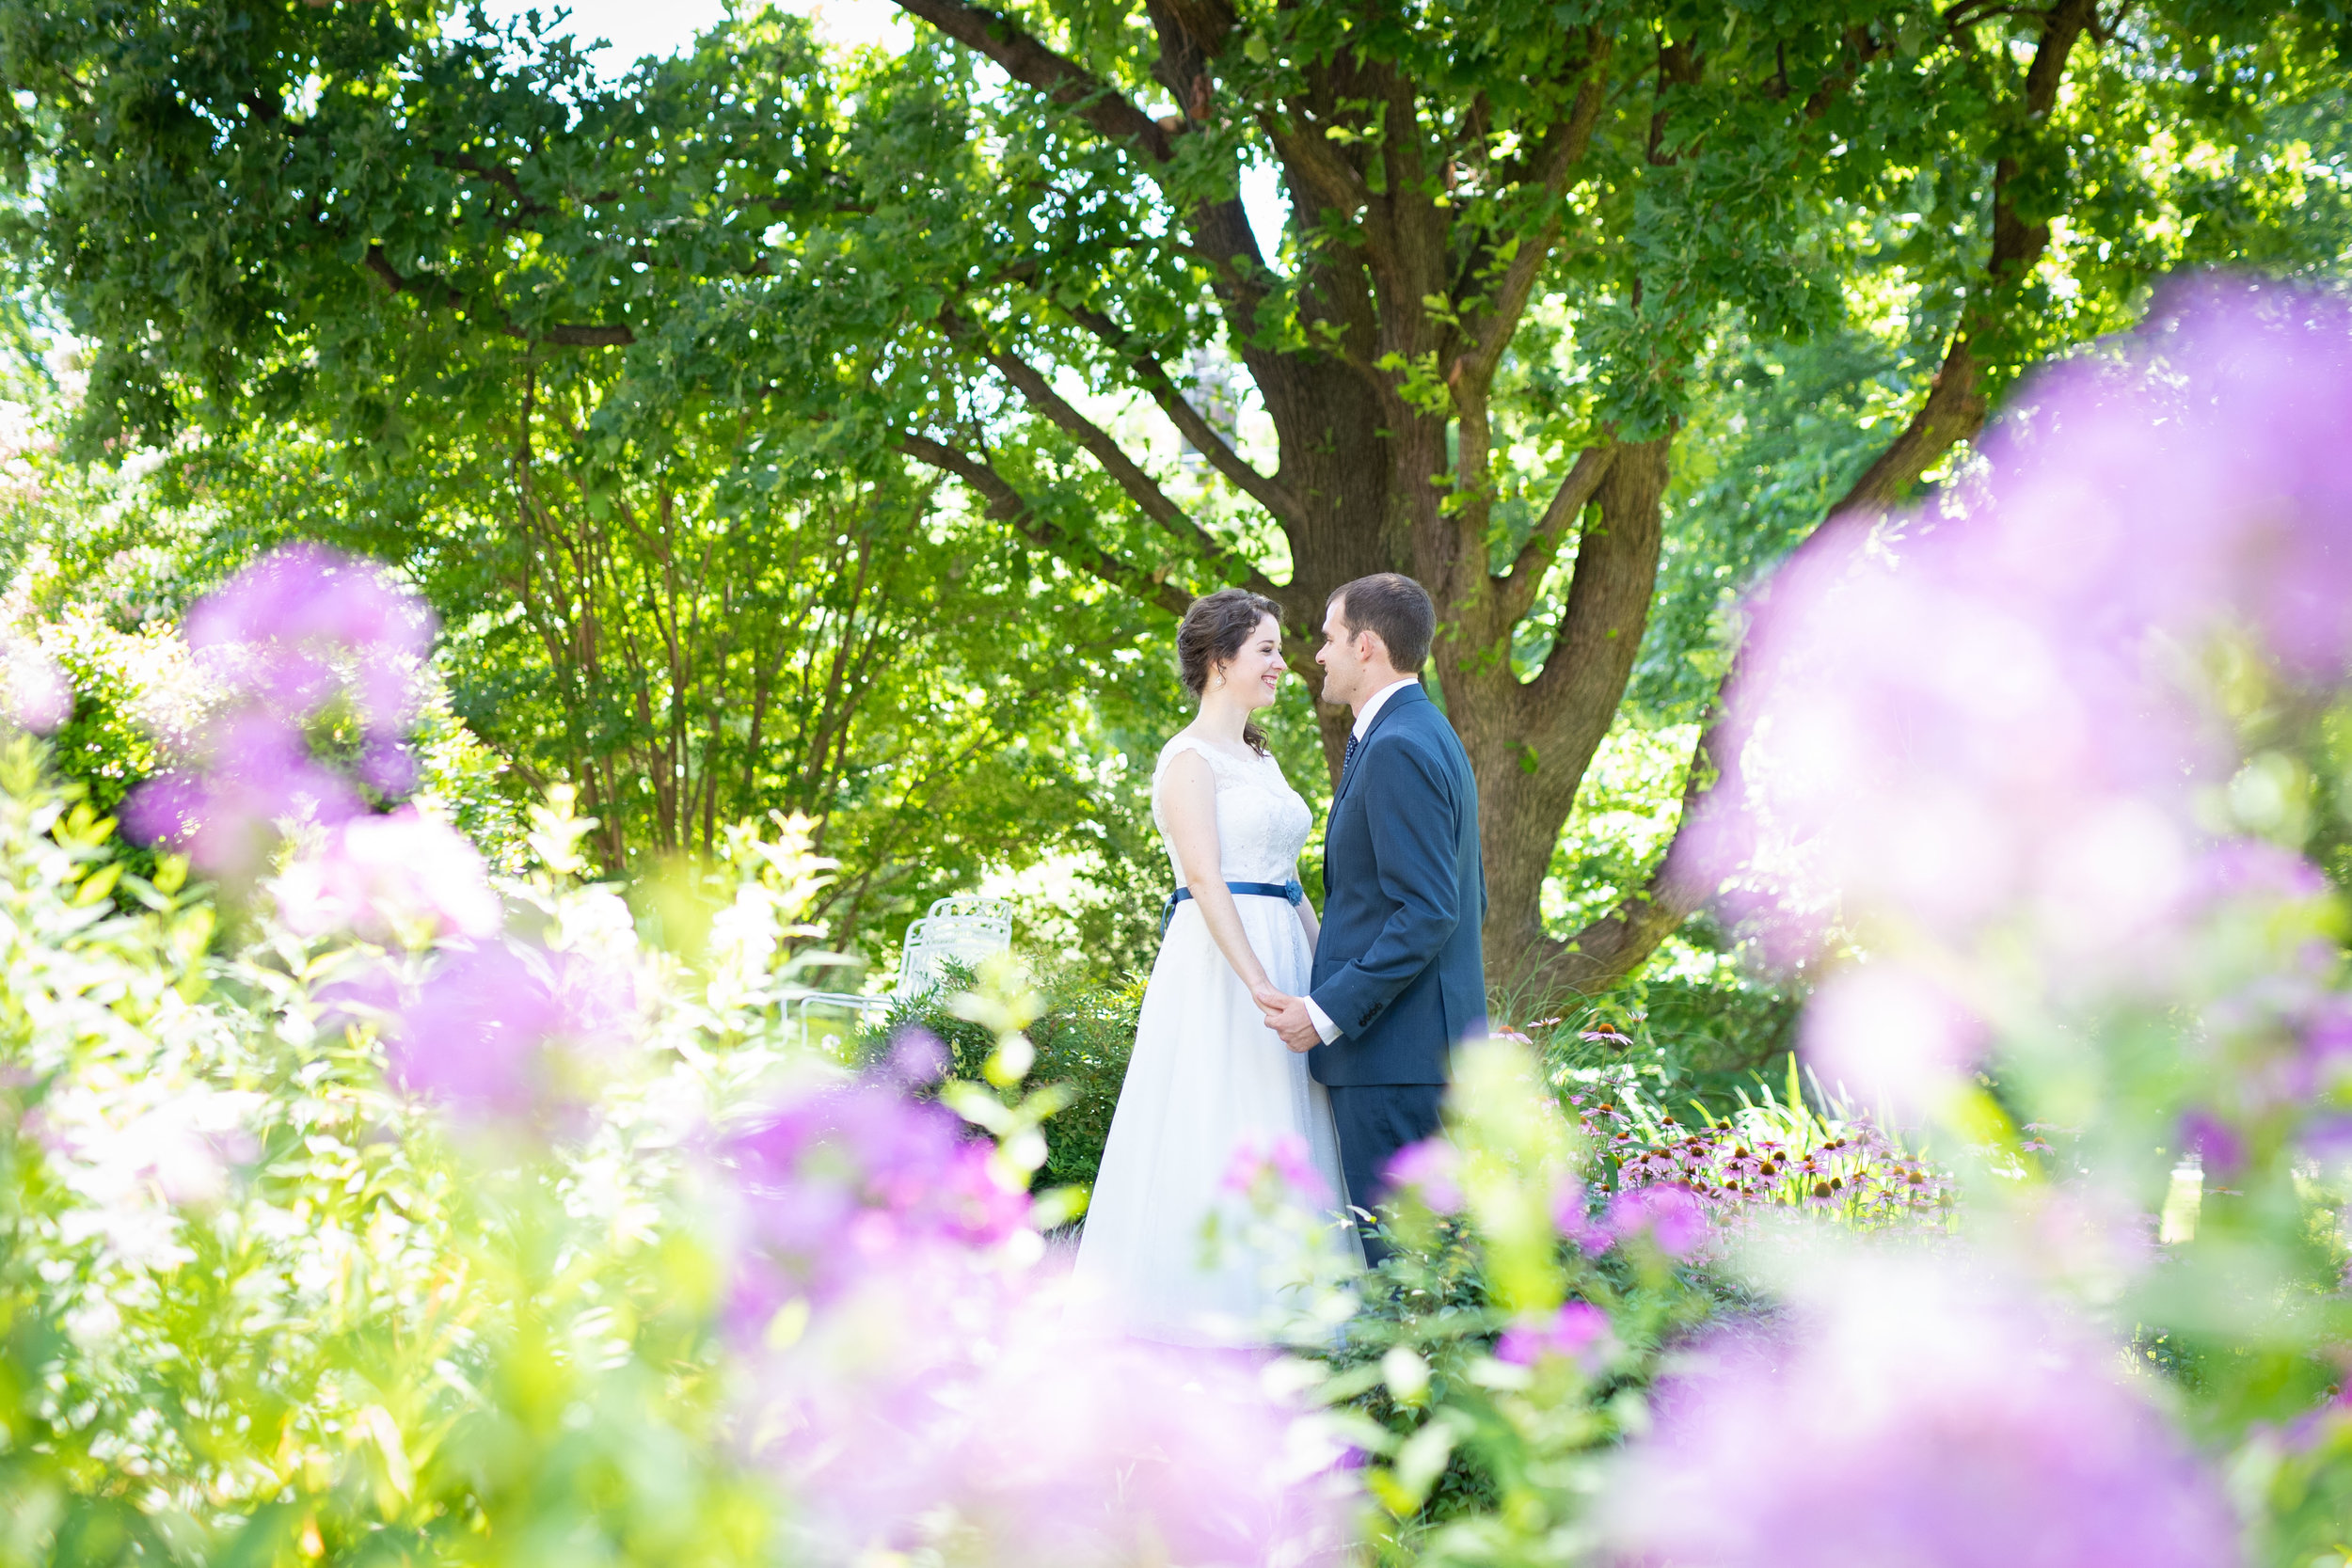 Outdoor images are often the stuff dreams are made of, yet indoor moments are often where intimate moments happen, away from the distractions of nature and prying eyes of guests.